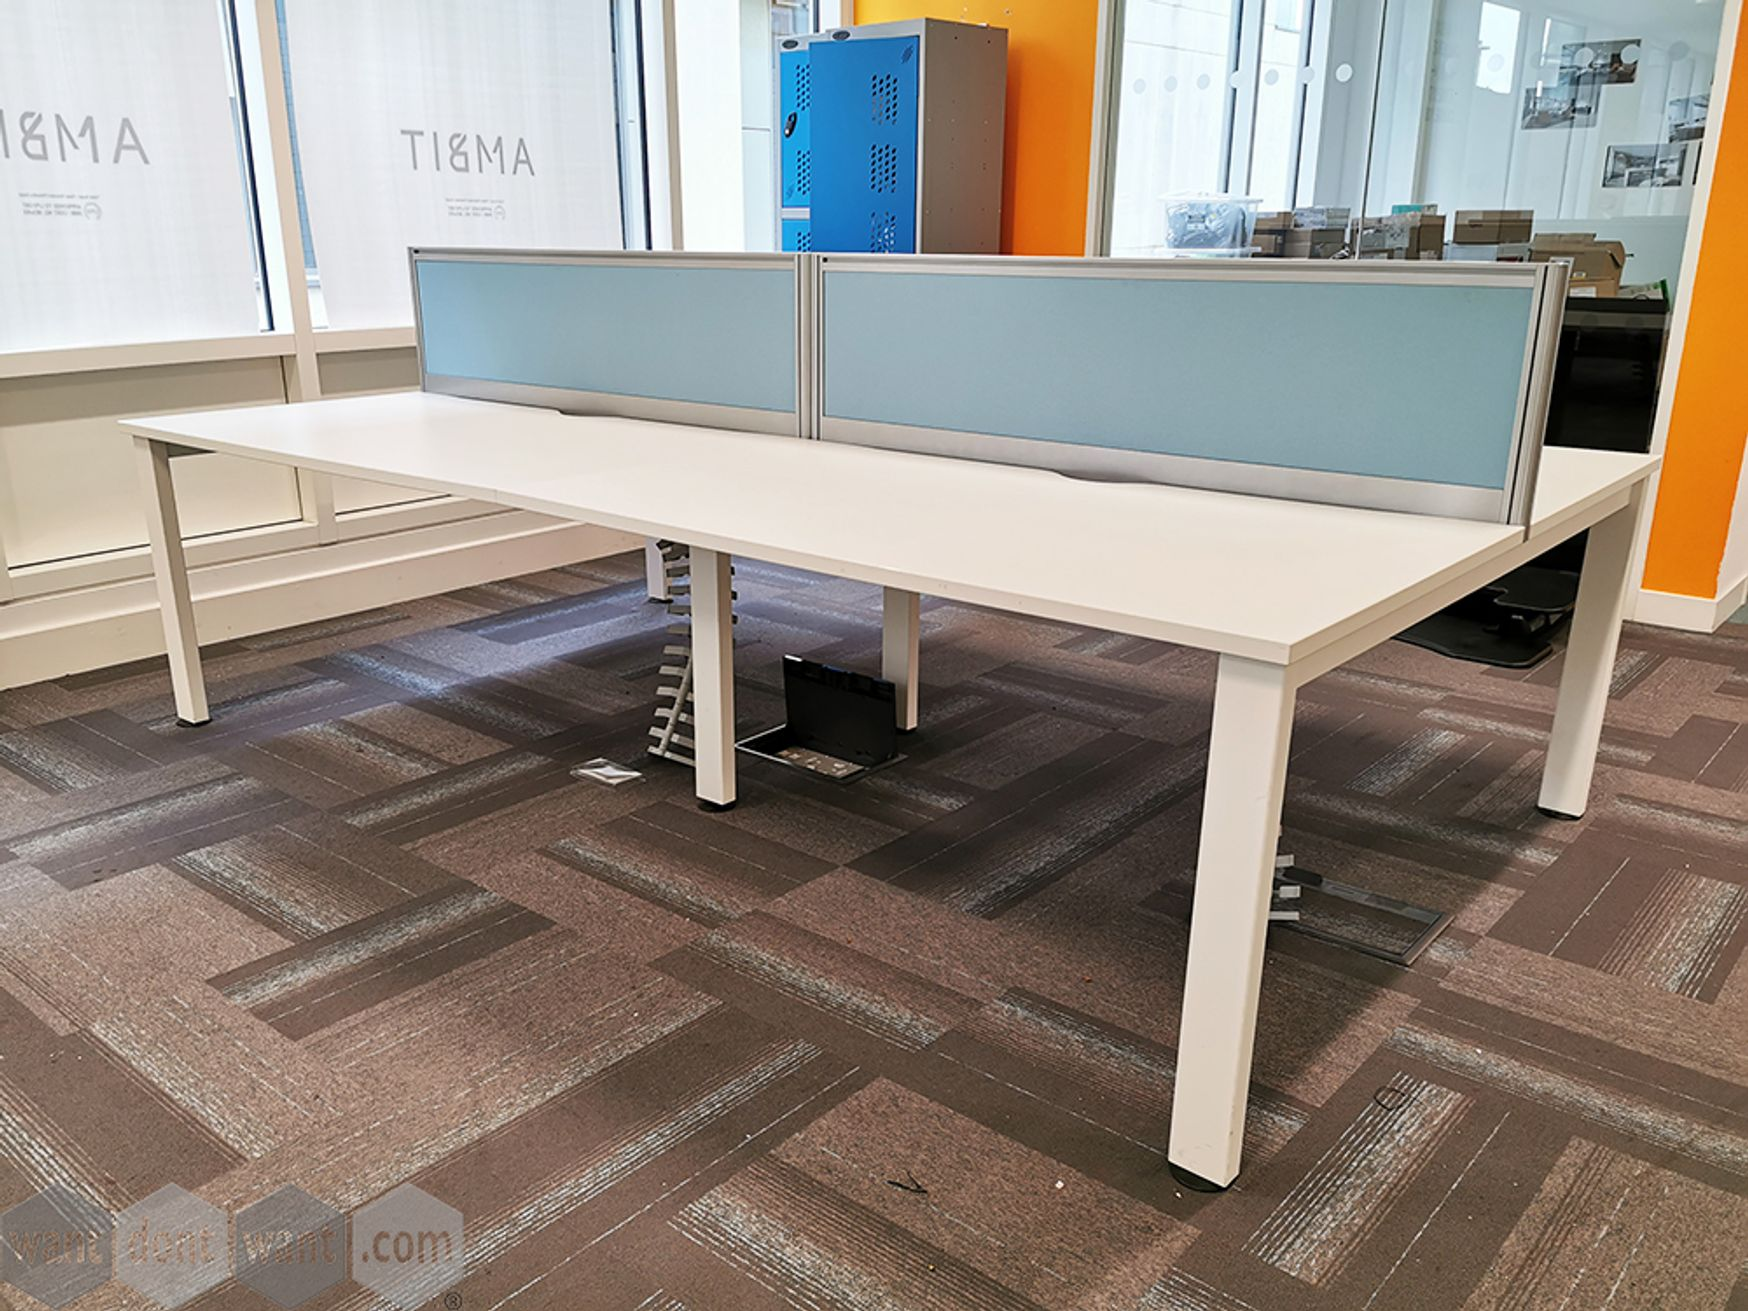 Used 1400mm Senator White Bench Desks - Screens and Cable Trays Included